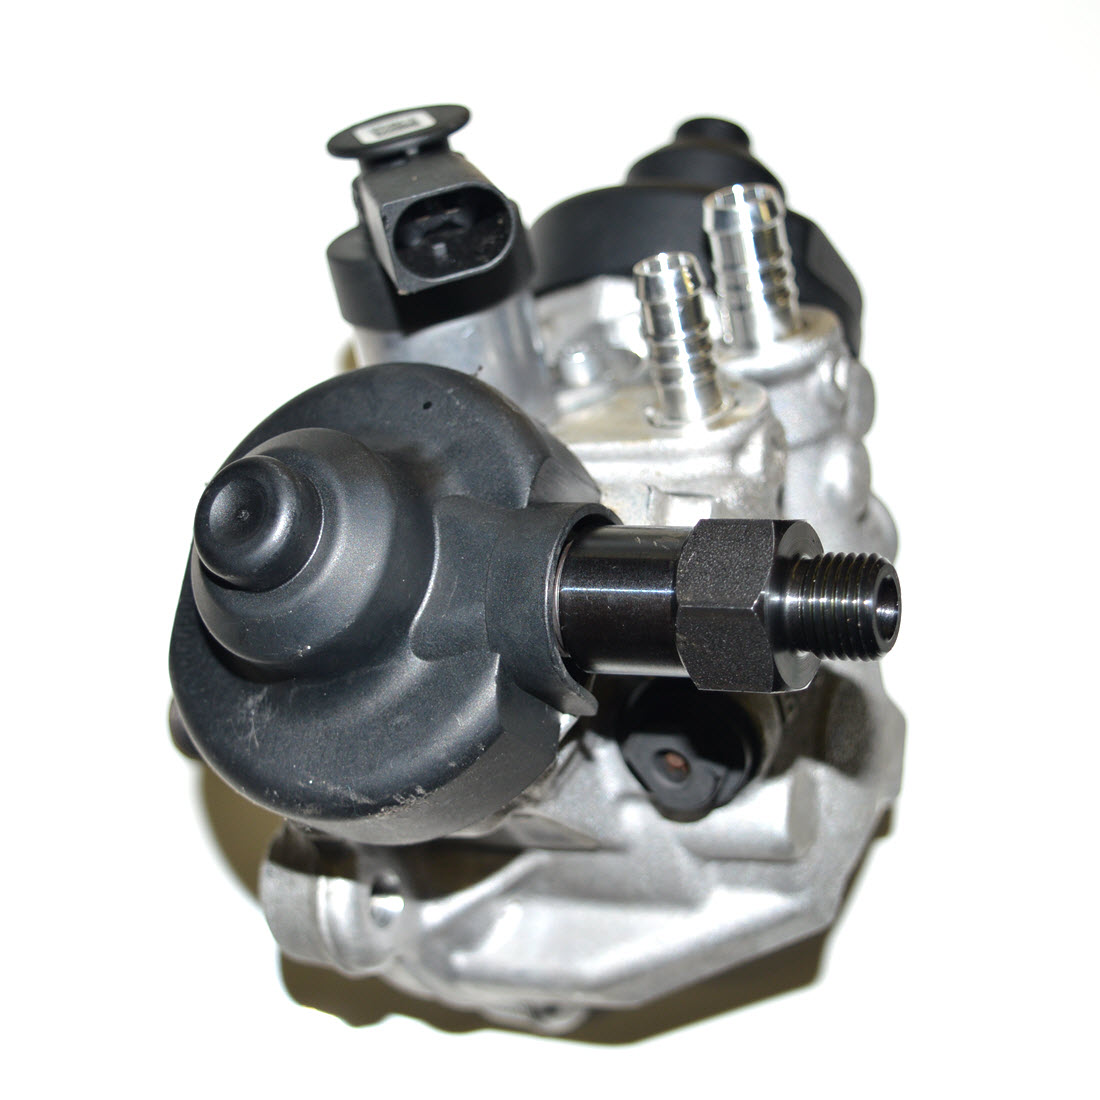 Bosch CP4 High pressure adaptor 3